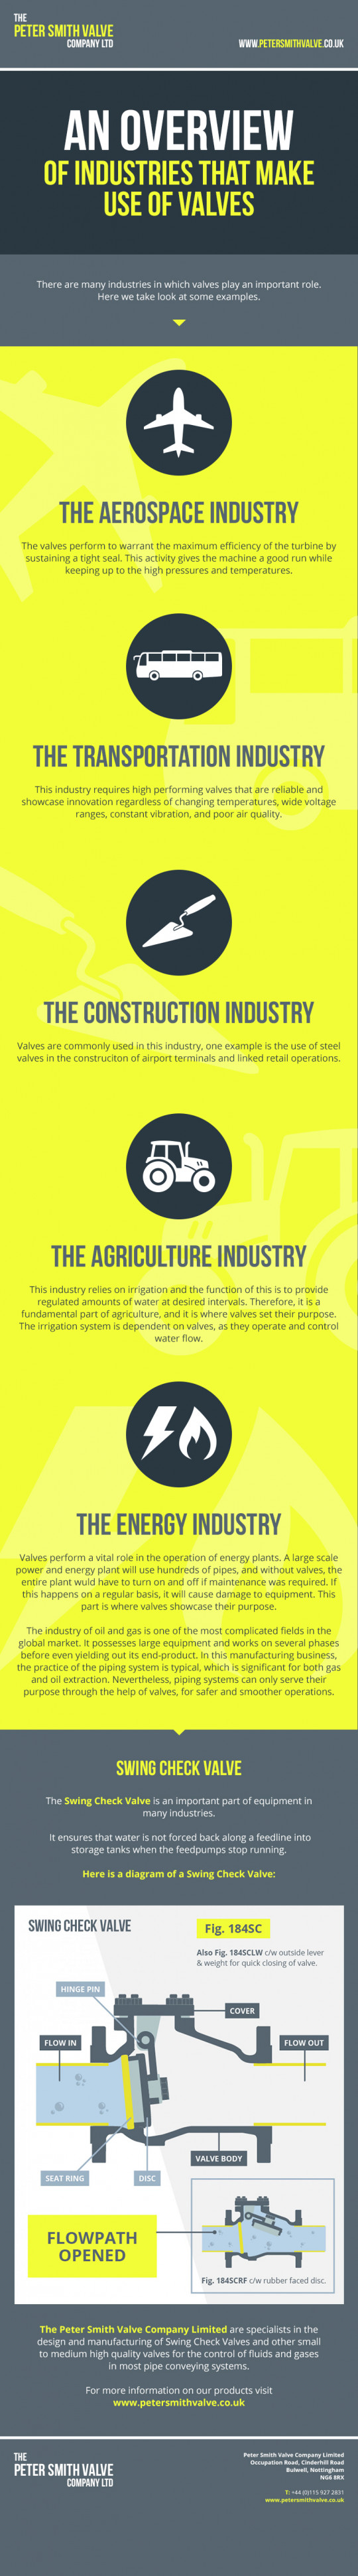 An Overview of Industries That MAKE Use OF Valves